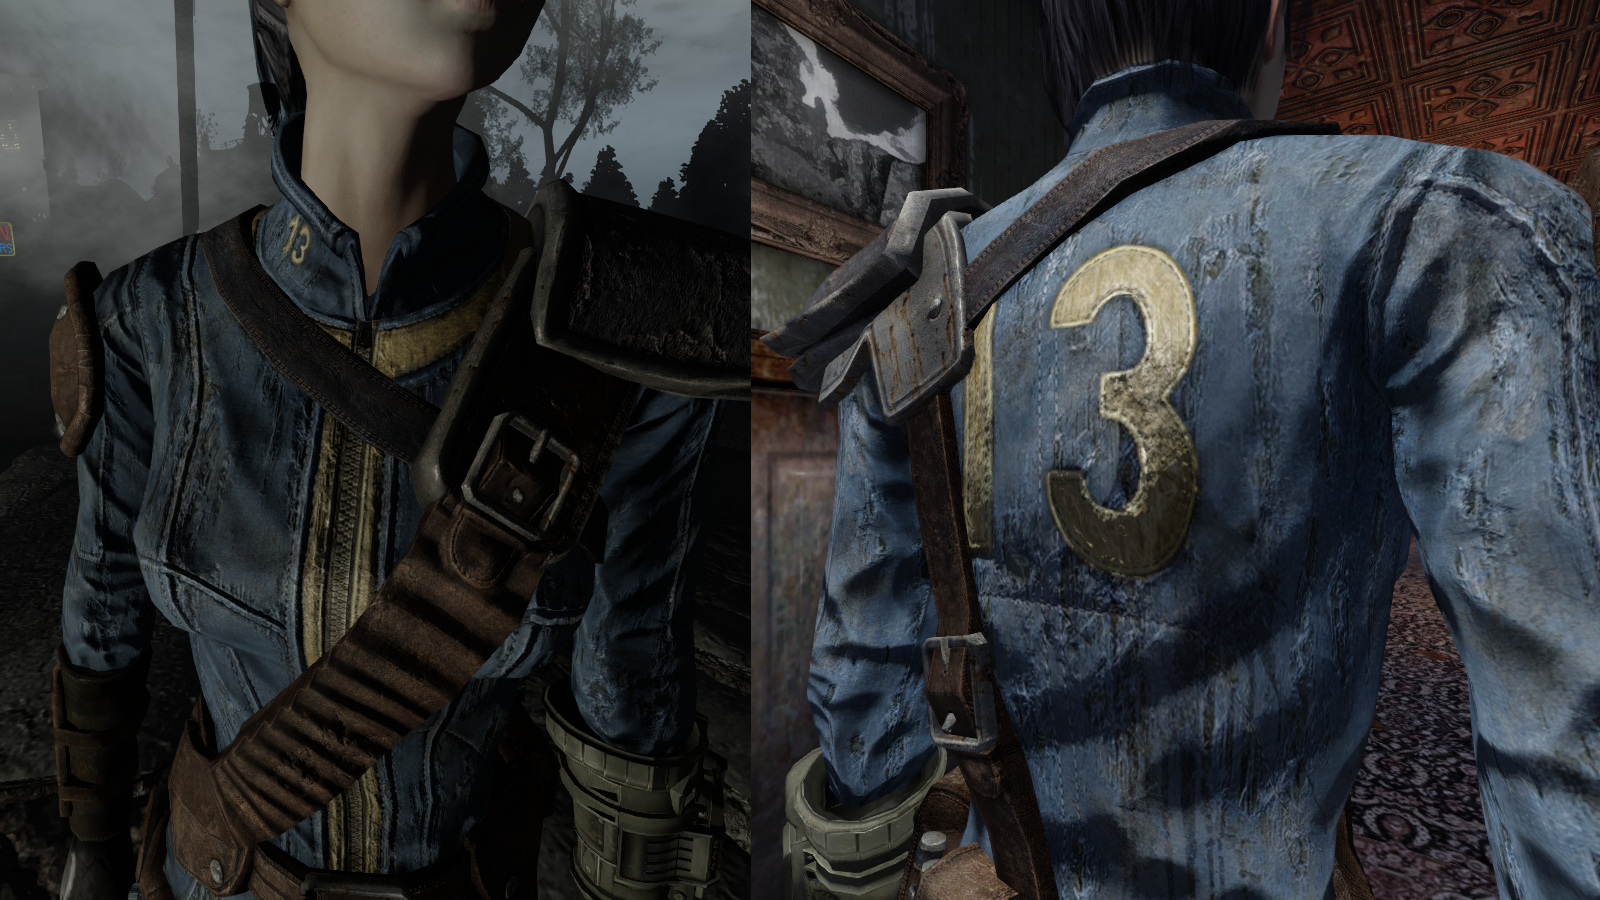 Hr Armored Vault 13 Jumpsuit At Fallout New Vegas Mods And Community